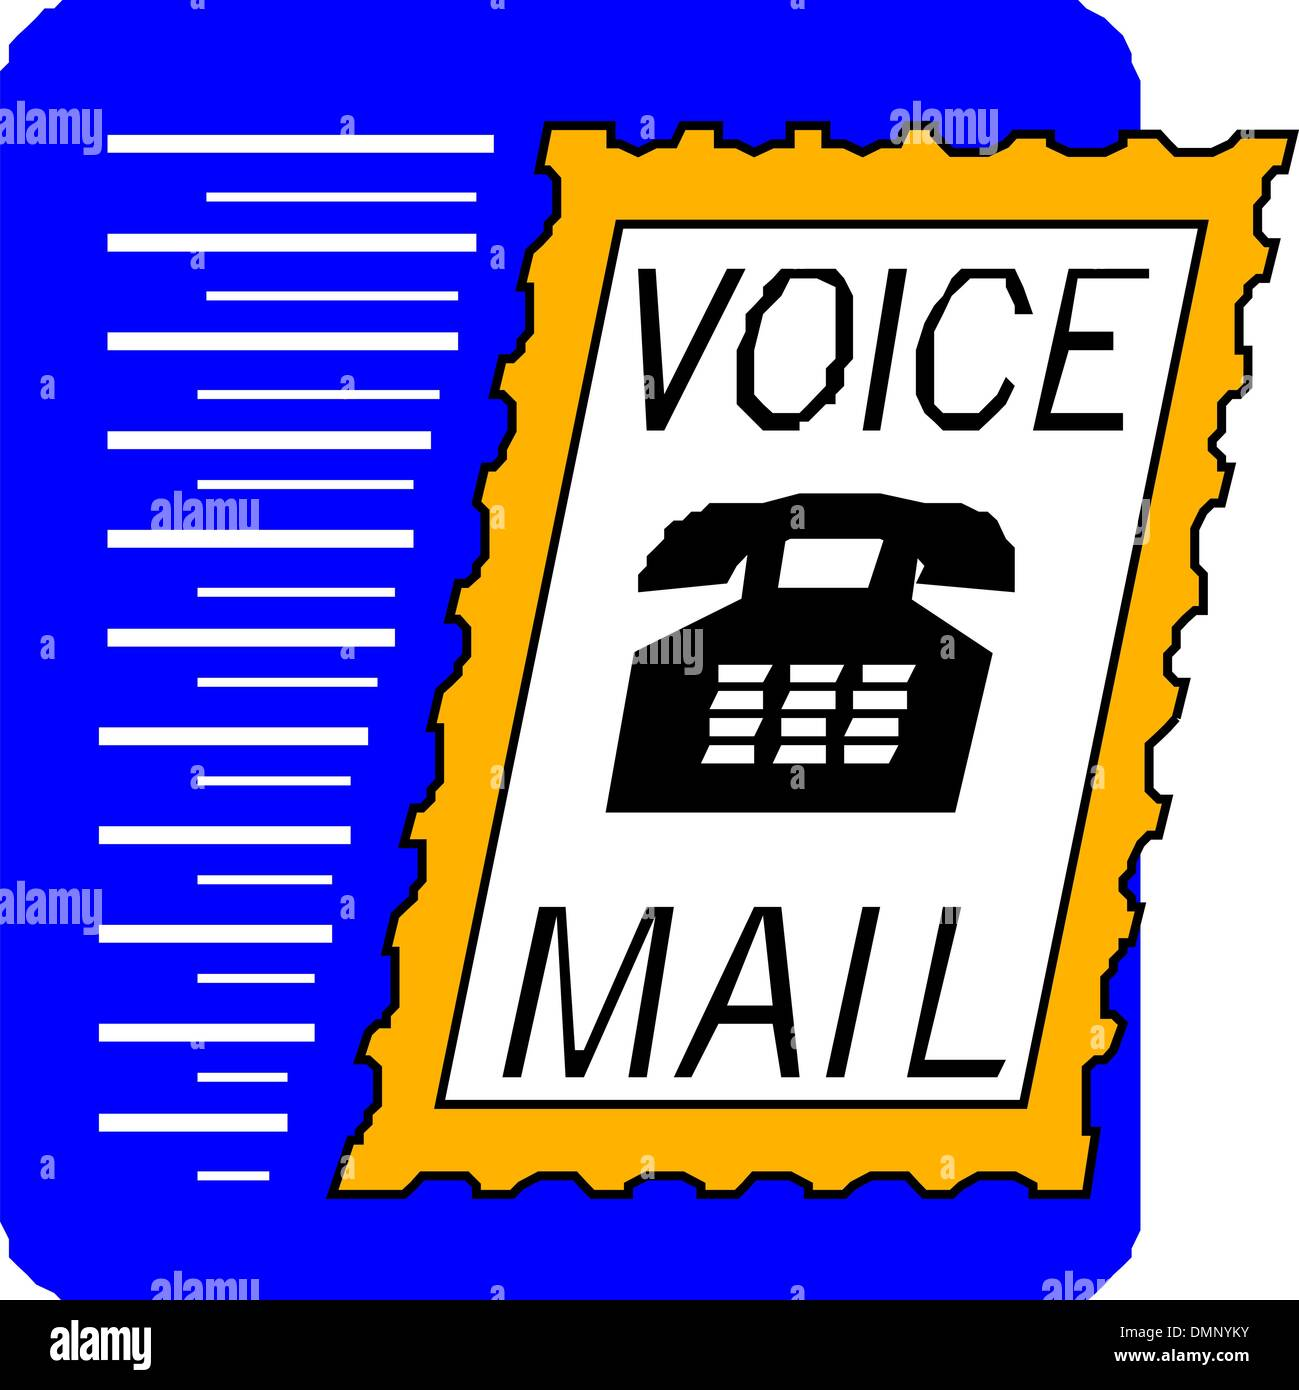 voice mail - Stock Vector